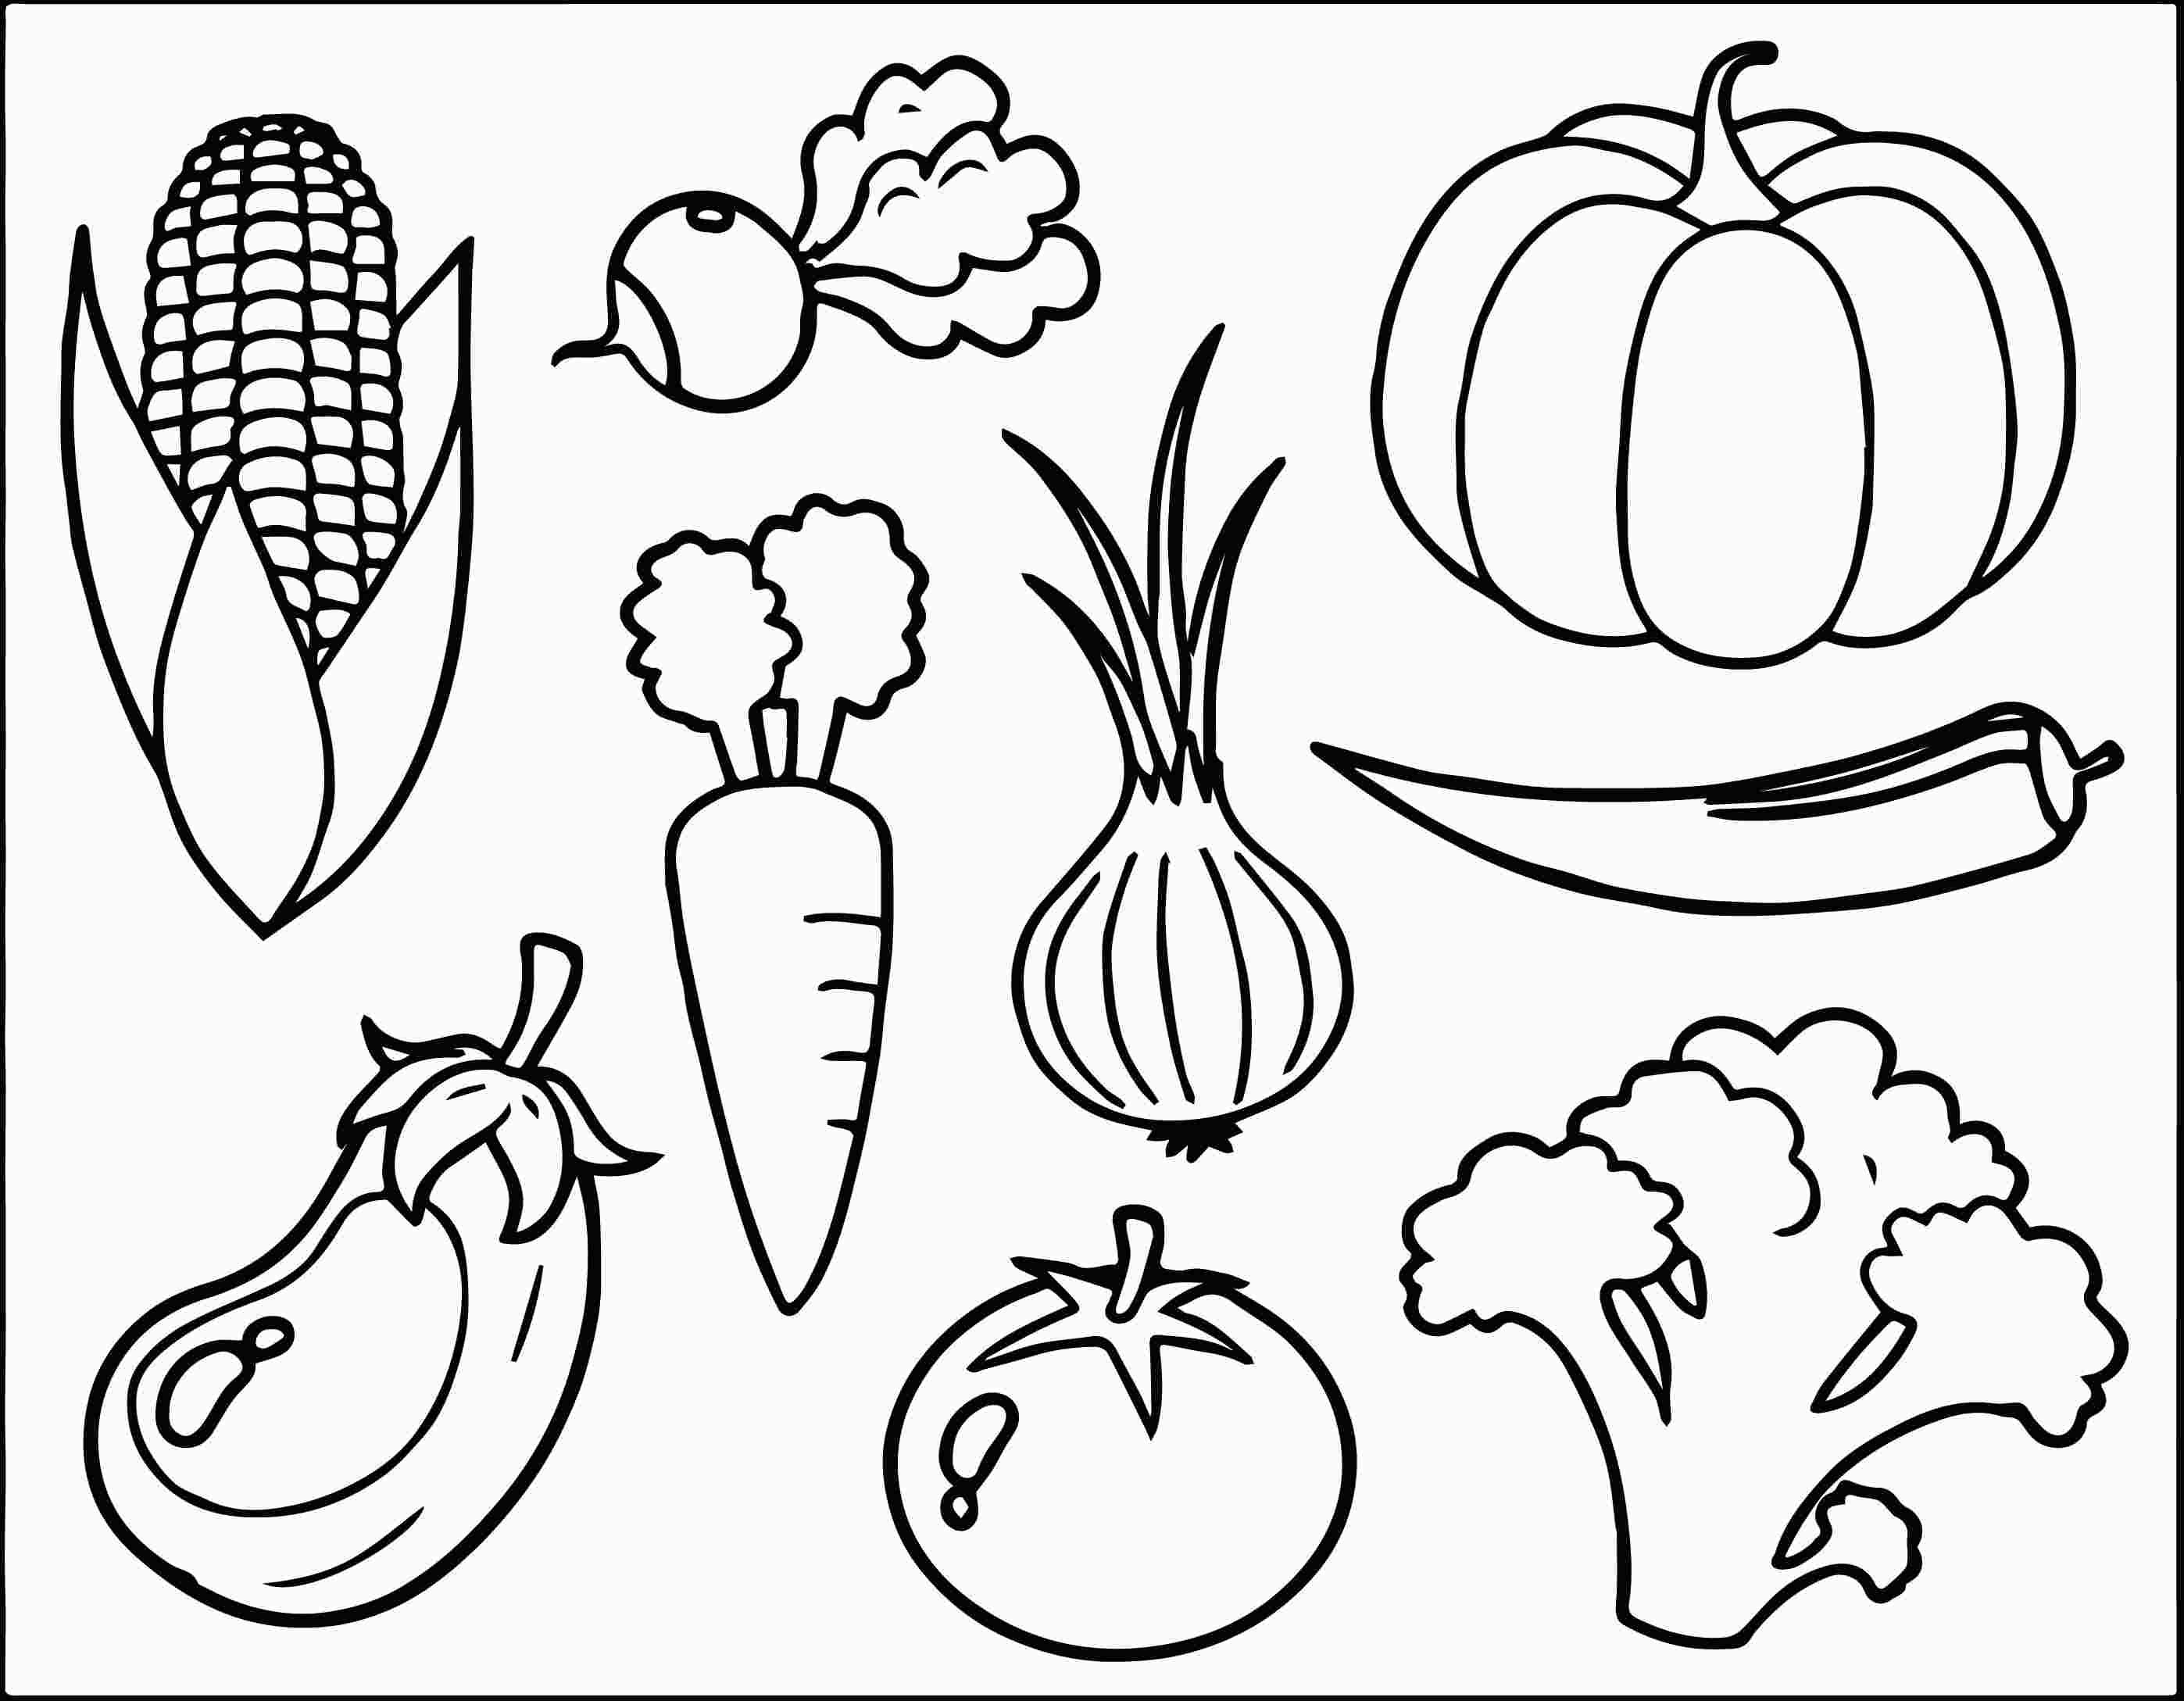 Free Vegetable Coloring Pages With Images Fruit Coloring Pages